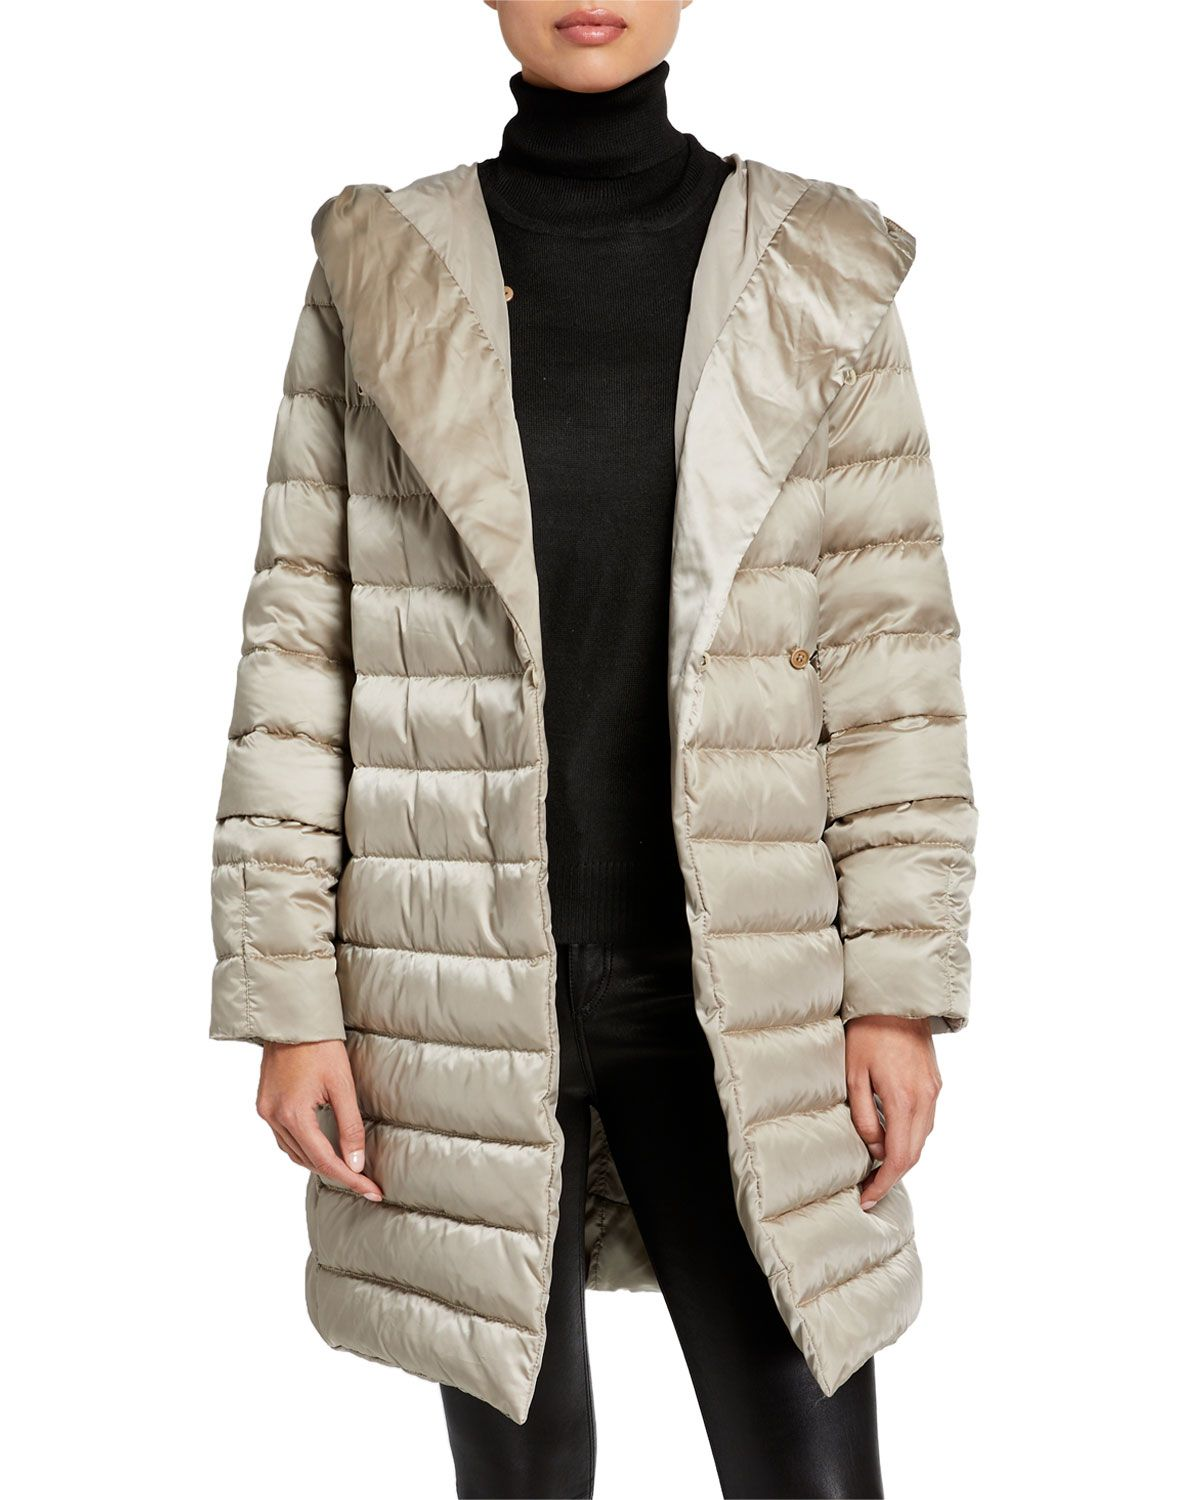 Max Mara The Cube Here Is The Cube Collection Novef Reversible Belted Down Jacket Down Jacket Reversible Belt Max Mara [ 1500 x 1200 Pixel ]